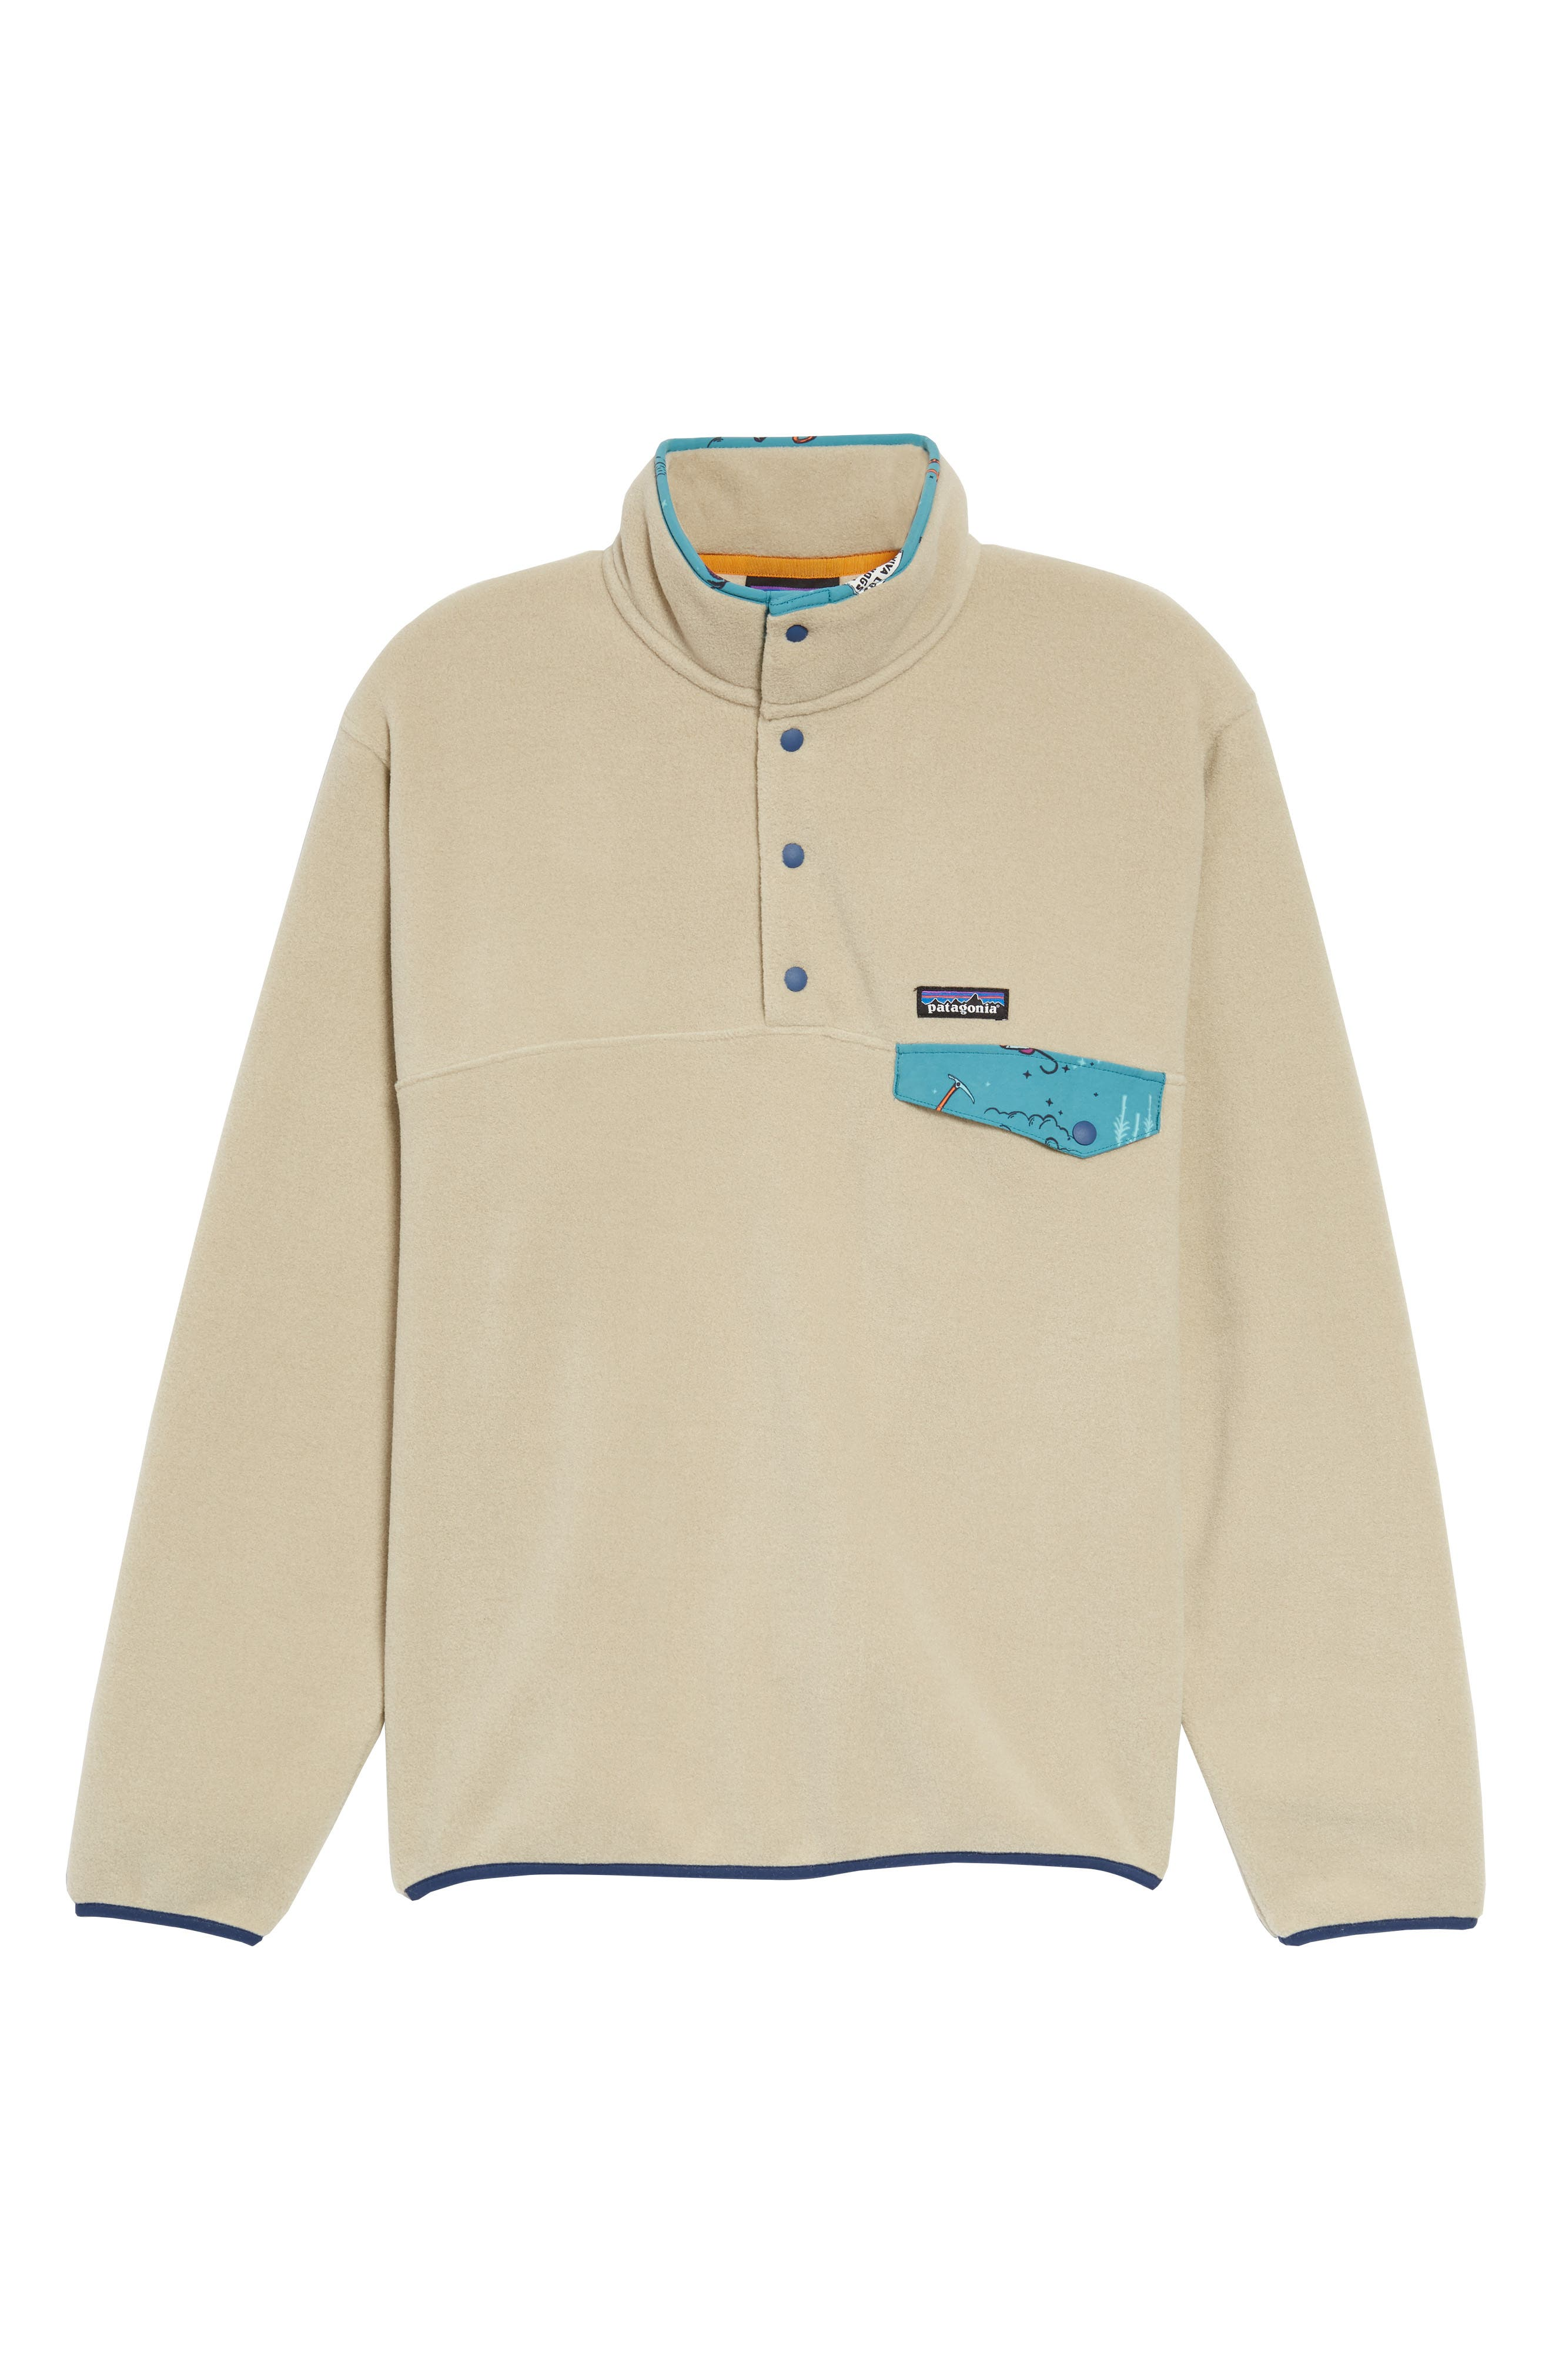 Synchilla<sup>®</sup> Snap-T<sup>®</sup> Fleece Pullover,                             Alternate thumbnail 6, color,                             255